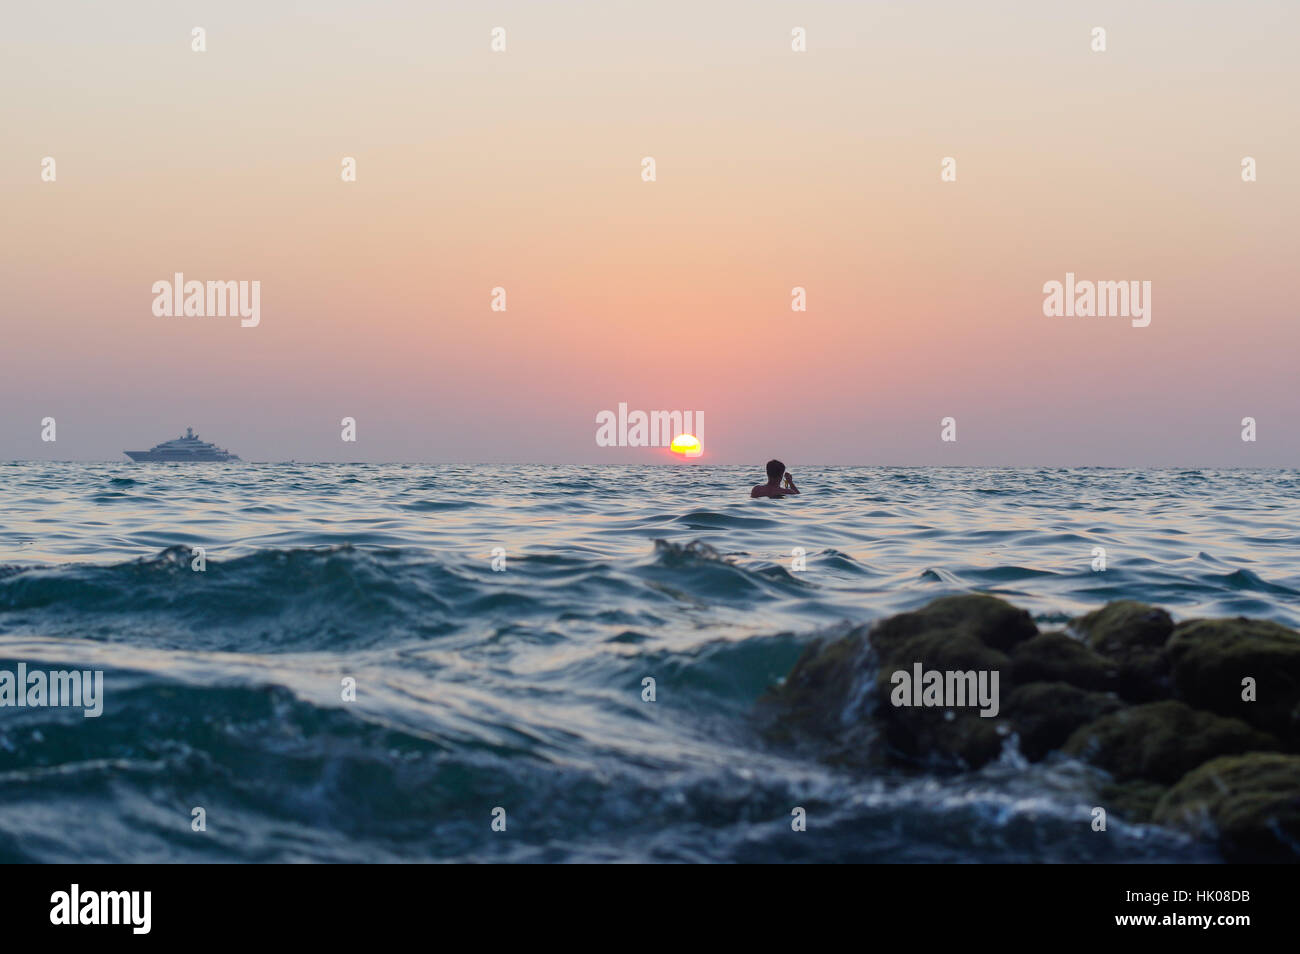 sea wave closeup at sunset time with red and orange sun reflection on the water. nature abstract blurred background. - Stock Image